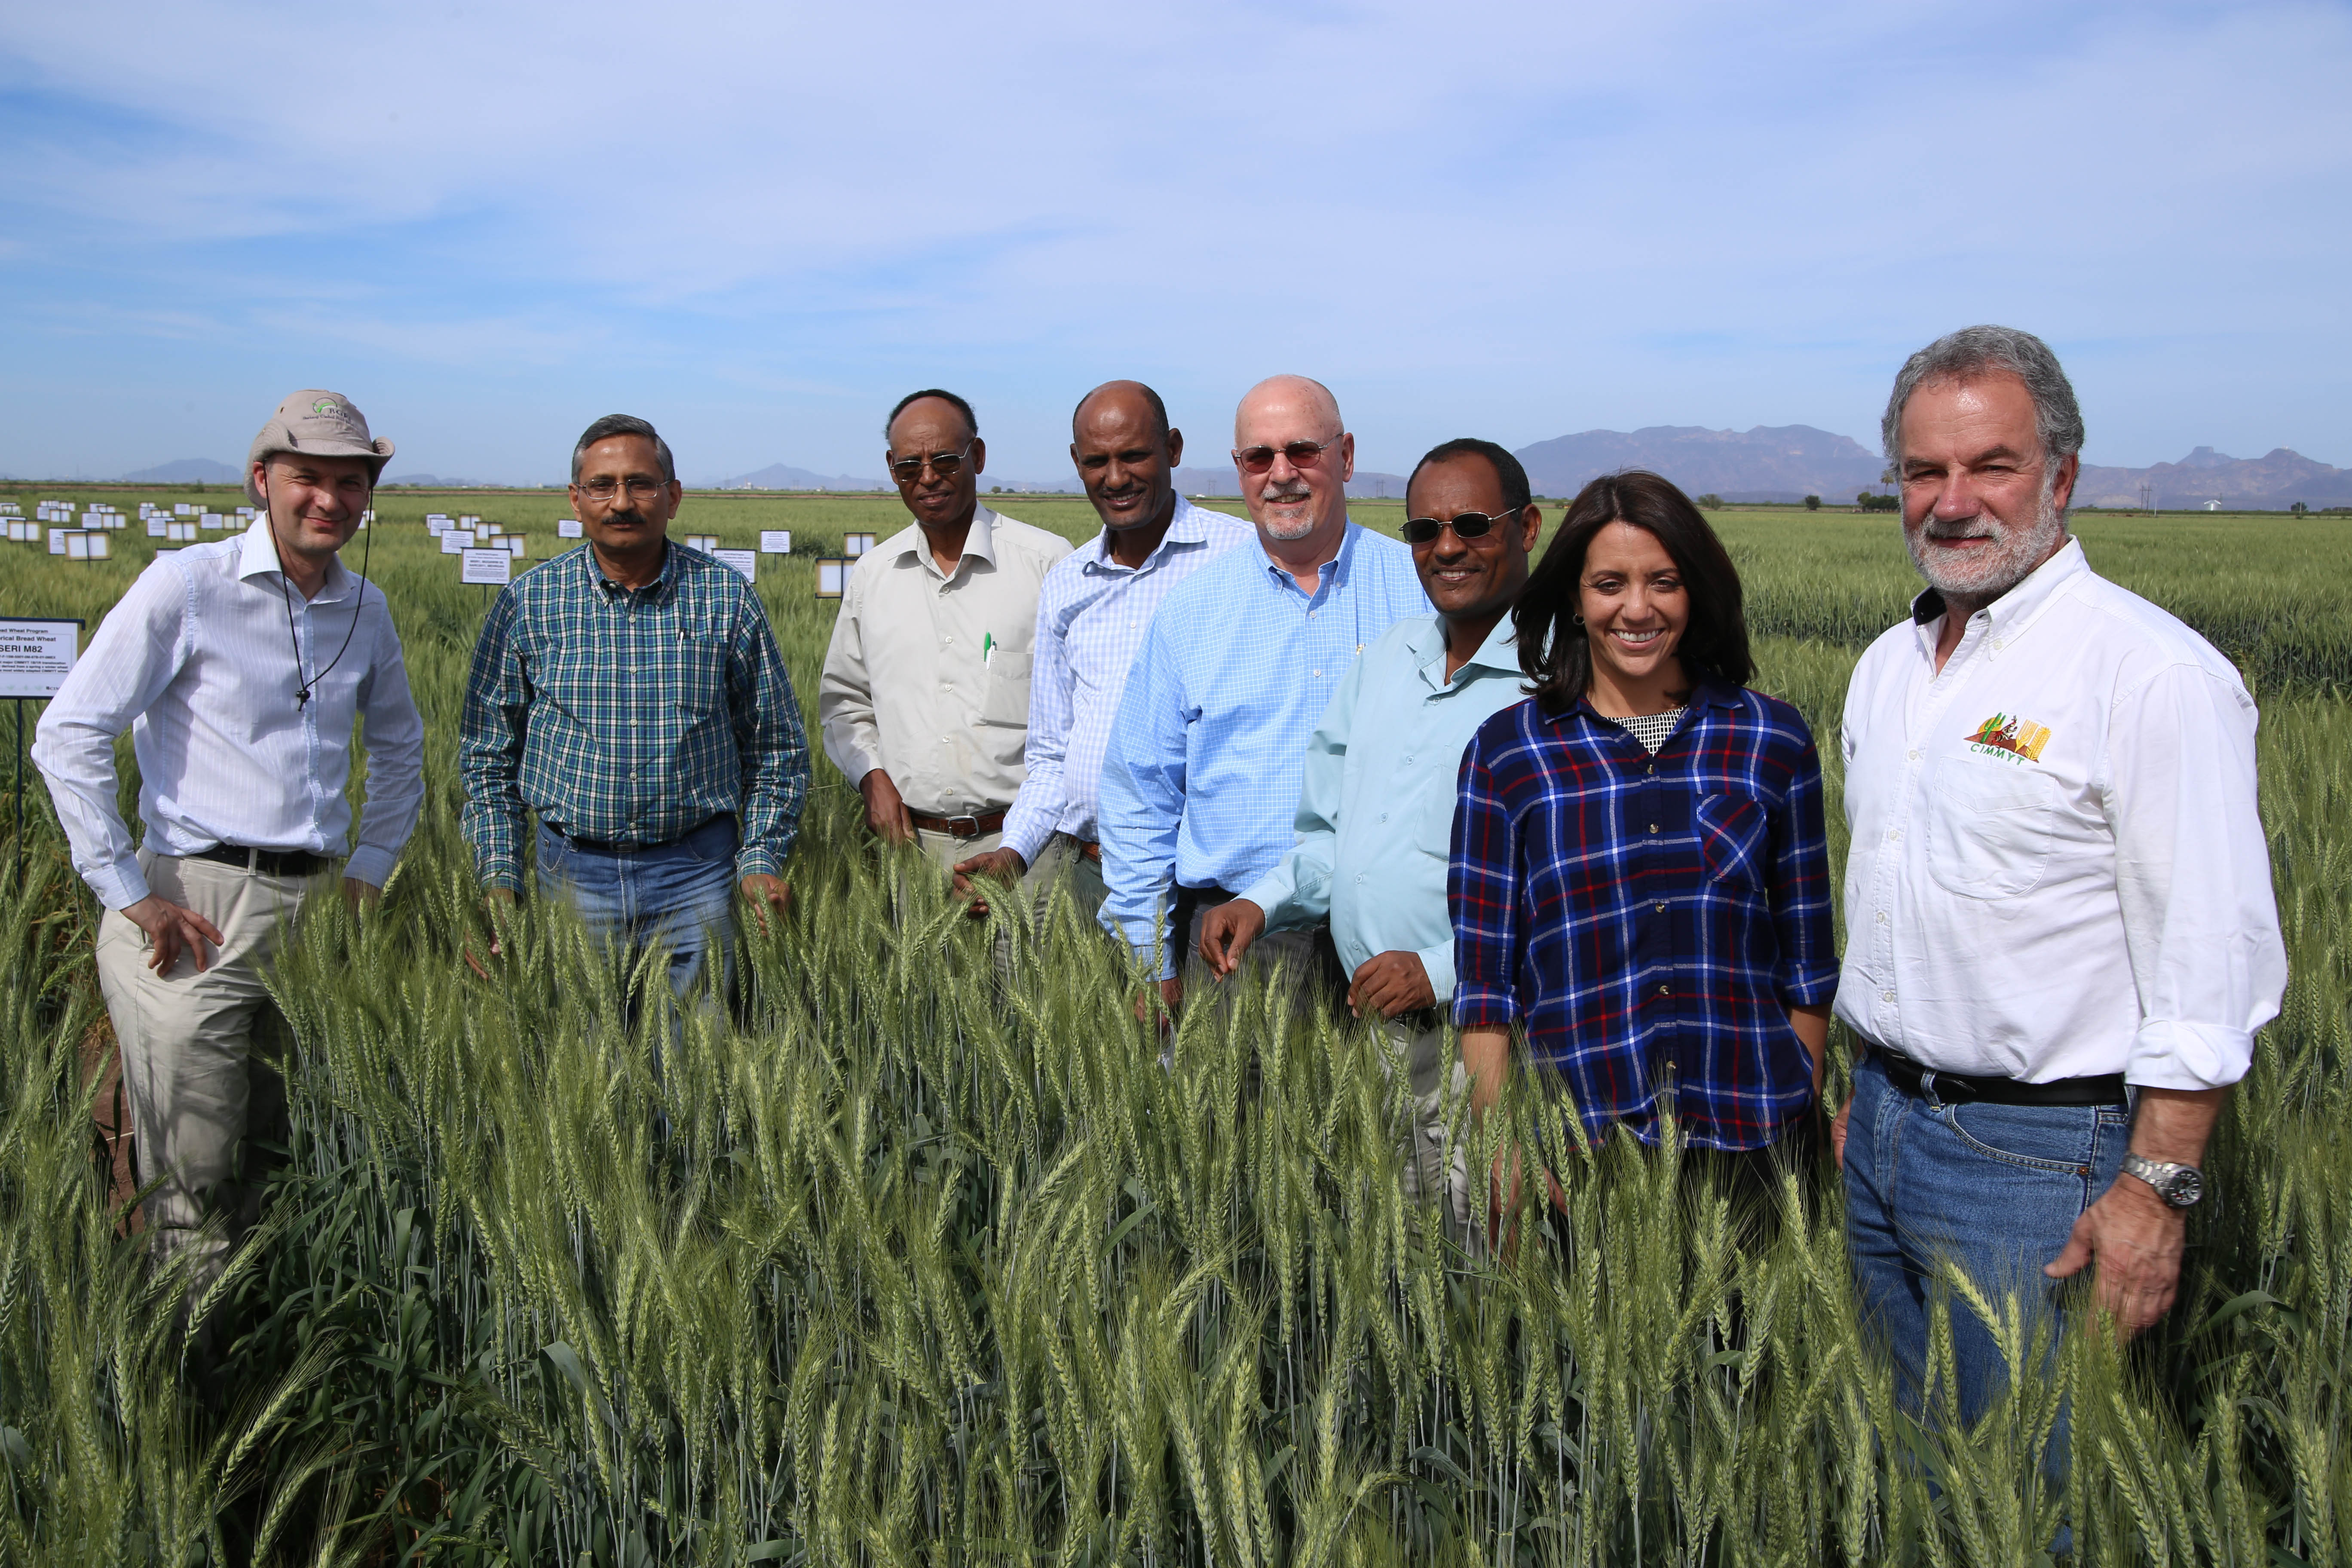 DGGW team: The new Cornell project — Delivering Genetic Gain in Wheat (DGGW) — is a partnership that includes (among others) (l-r) Dave Hodson and Ravi Singh of CIMMYT, Bedada Girma of the Ethiopian Institute for Agricultural Research (EIAR), Bekele Abeyo of CIMMYT, Ronnie Coffman of Cornell, Fentahun Mengistu of EIAR, Maricelis Acevedo, new director for science of the DGGW at Cornell, and Hans Braun, of CIMMYT. CORNELL/C.Knight